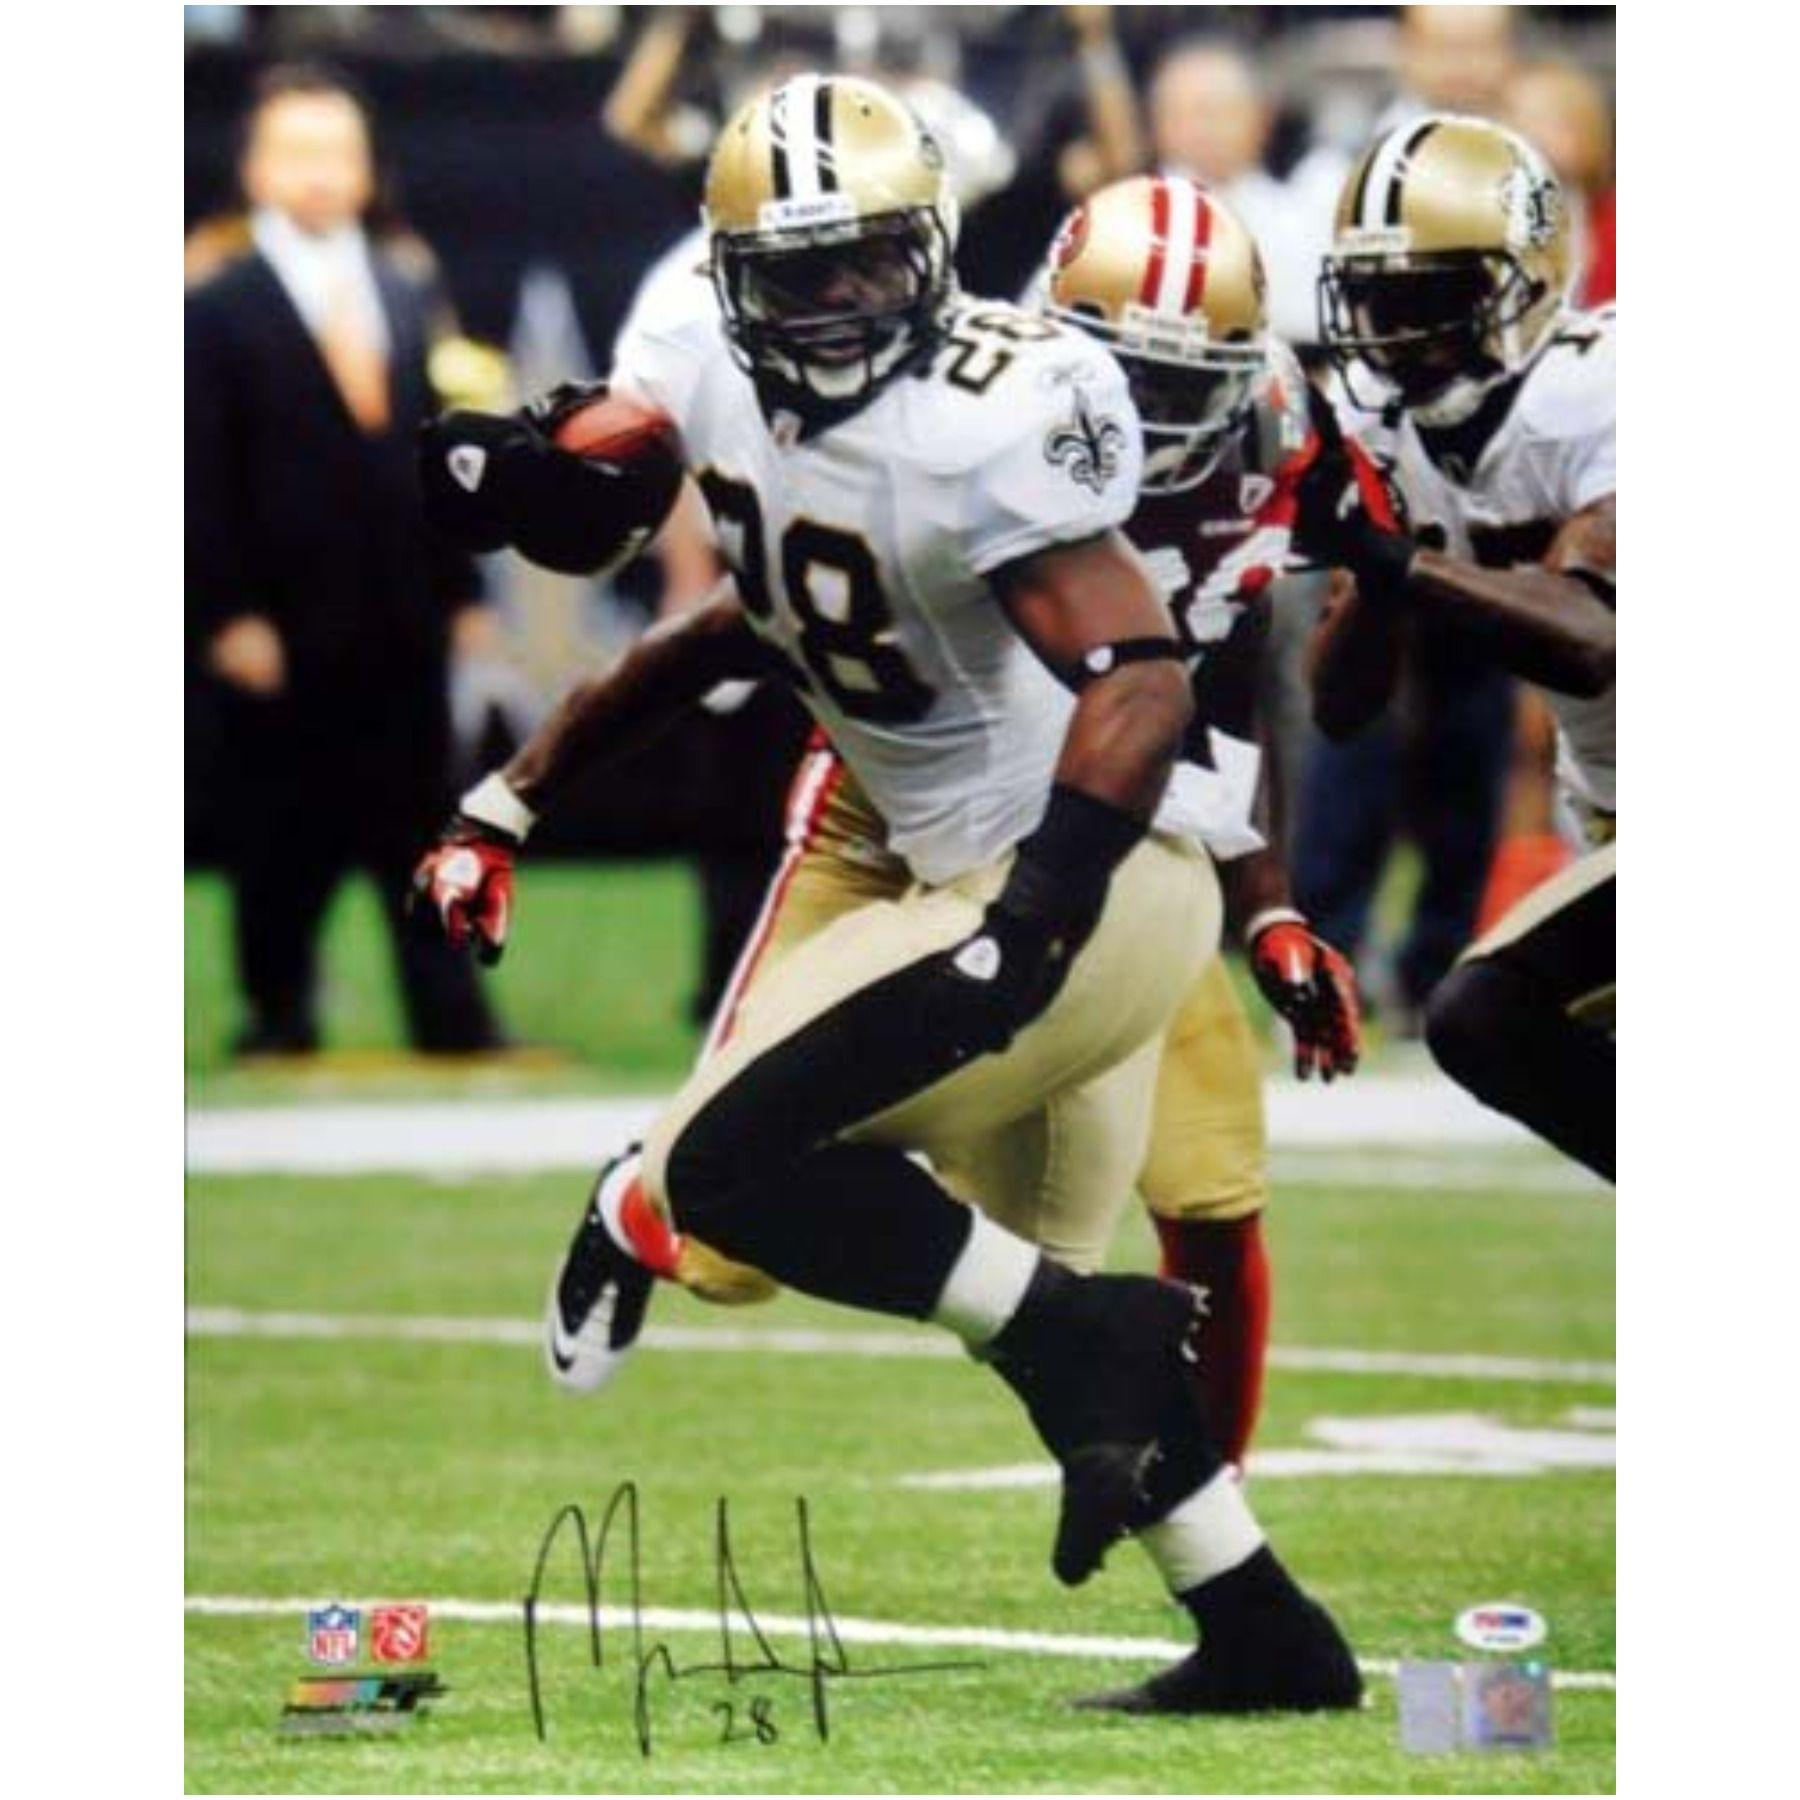 Mark Ingram Wallpaper, Ally 2 by Mark